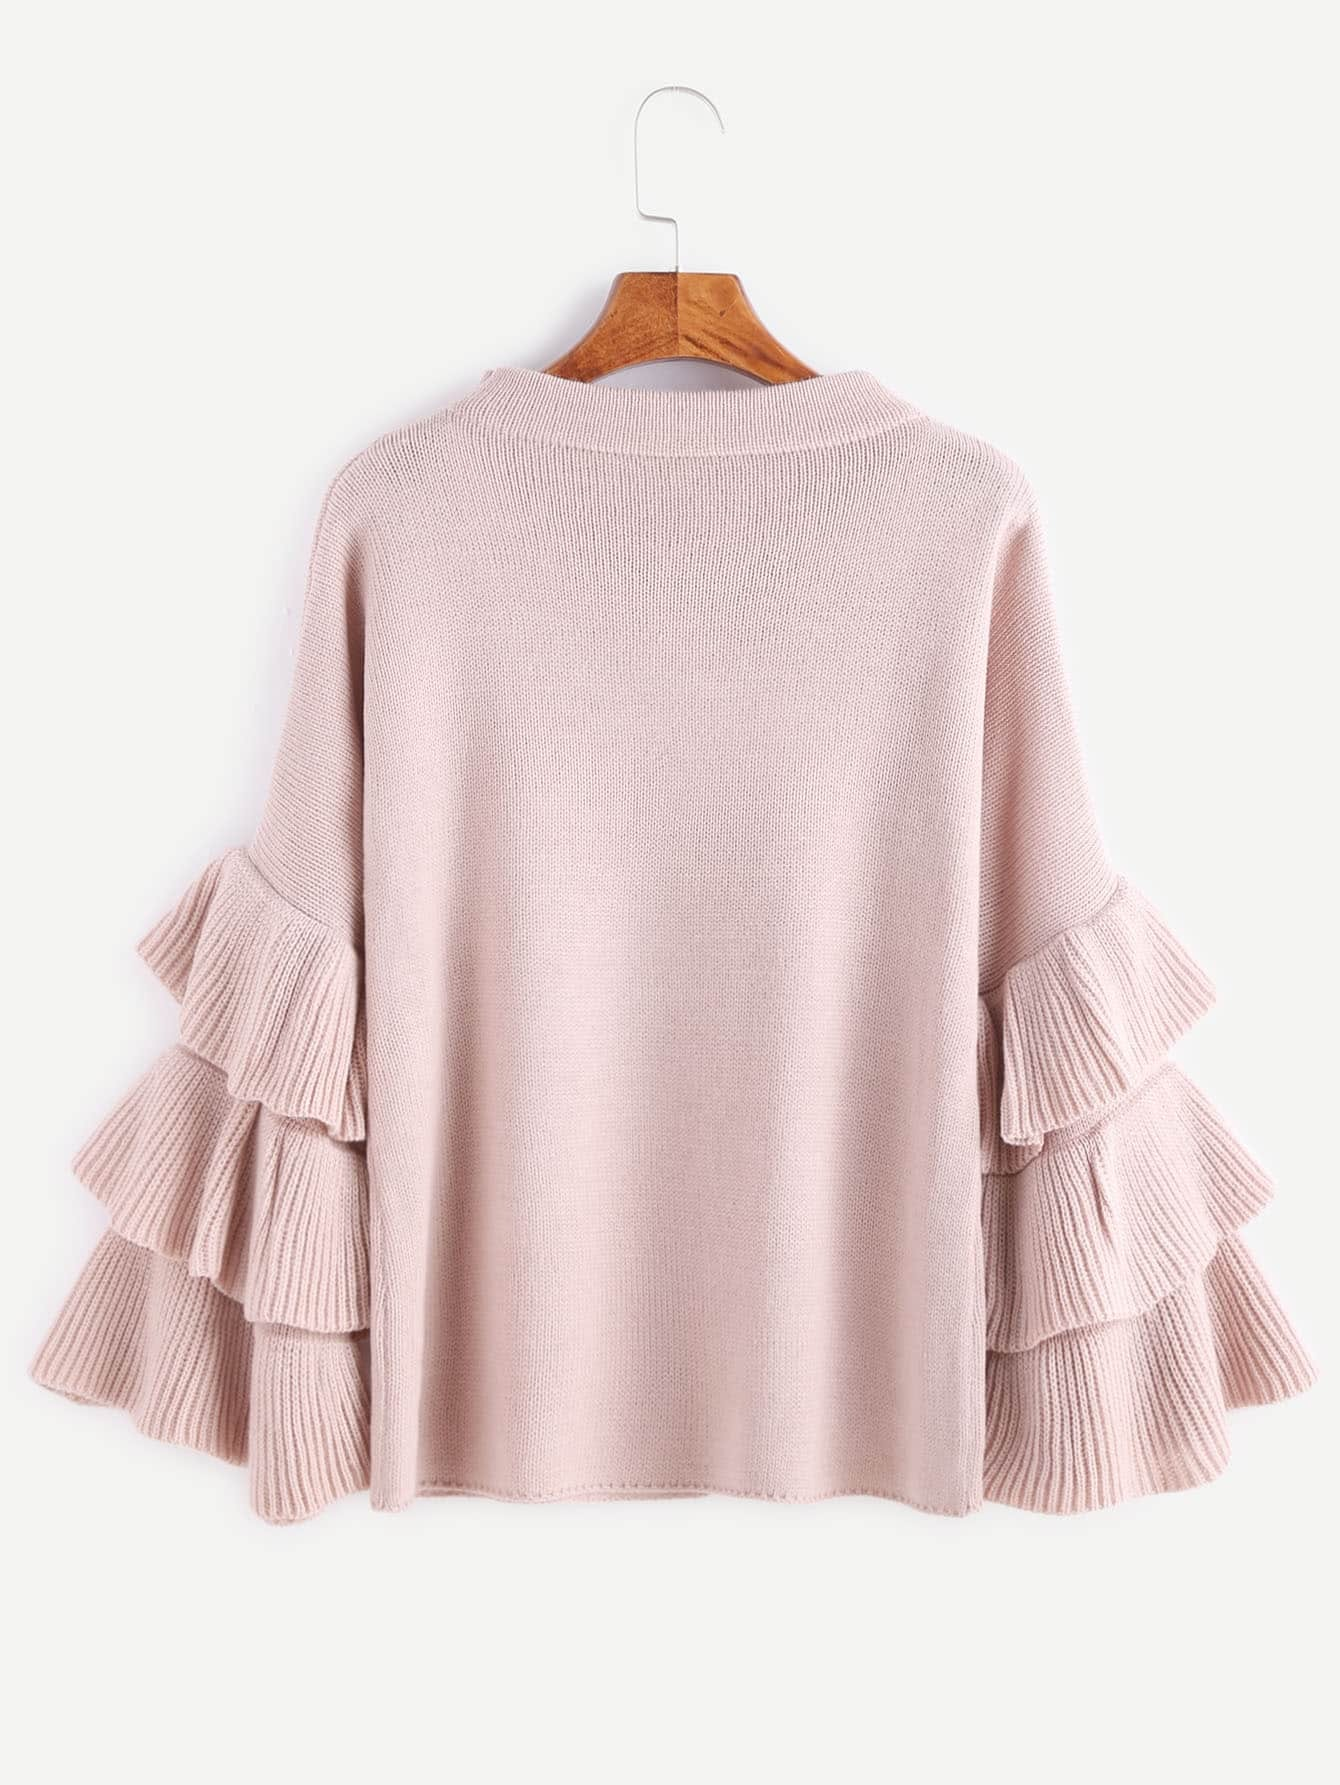 Pink Layered Ruffle Sleeve Pullover Sweater -SheIn(Sheinside)